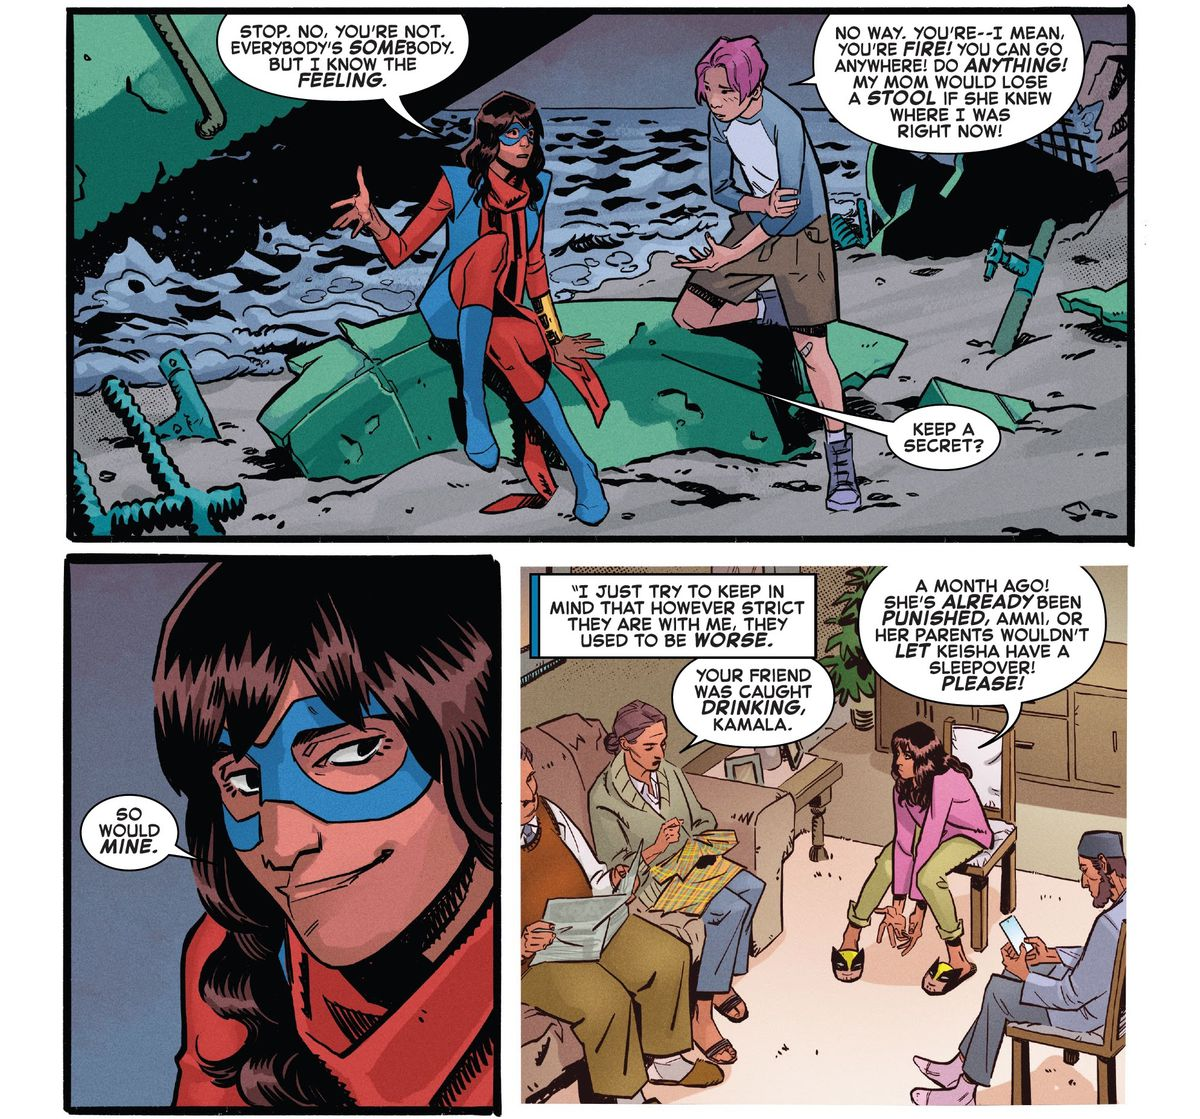 Ms. Marvel comforts a lonely teen who wishes she were more like her, and shares that she also has strict parents who don't get it in Marvels Snapshots: Captain Marvel, Marvel Comics (2021).